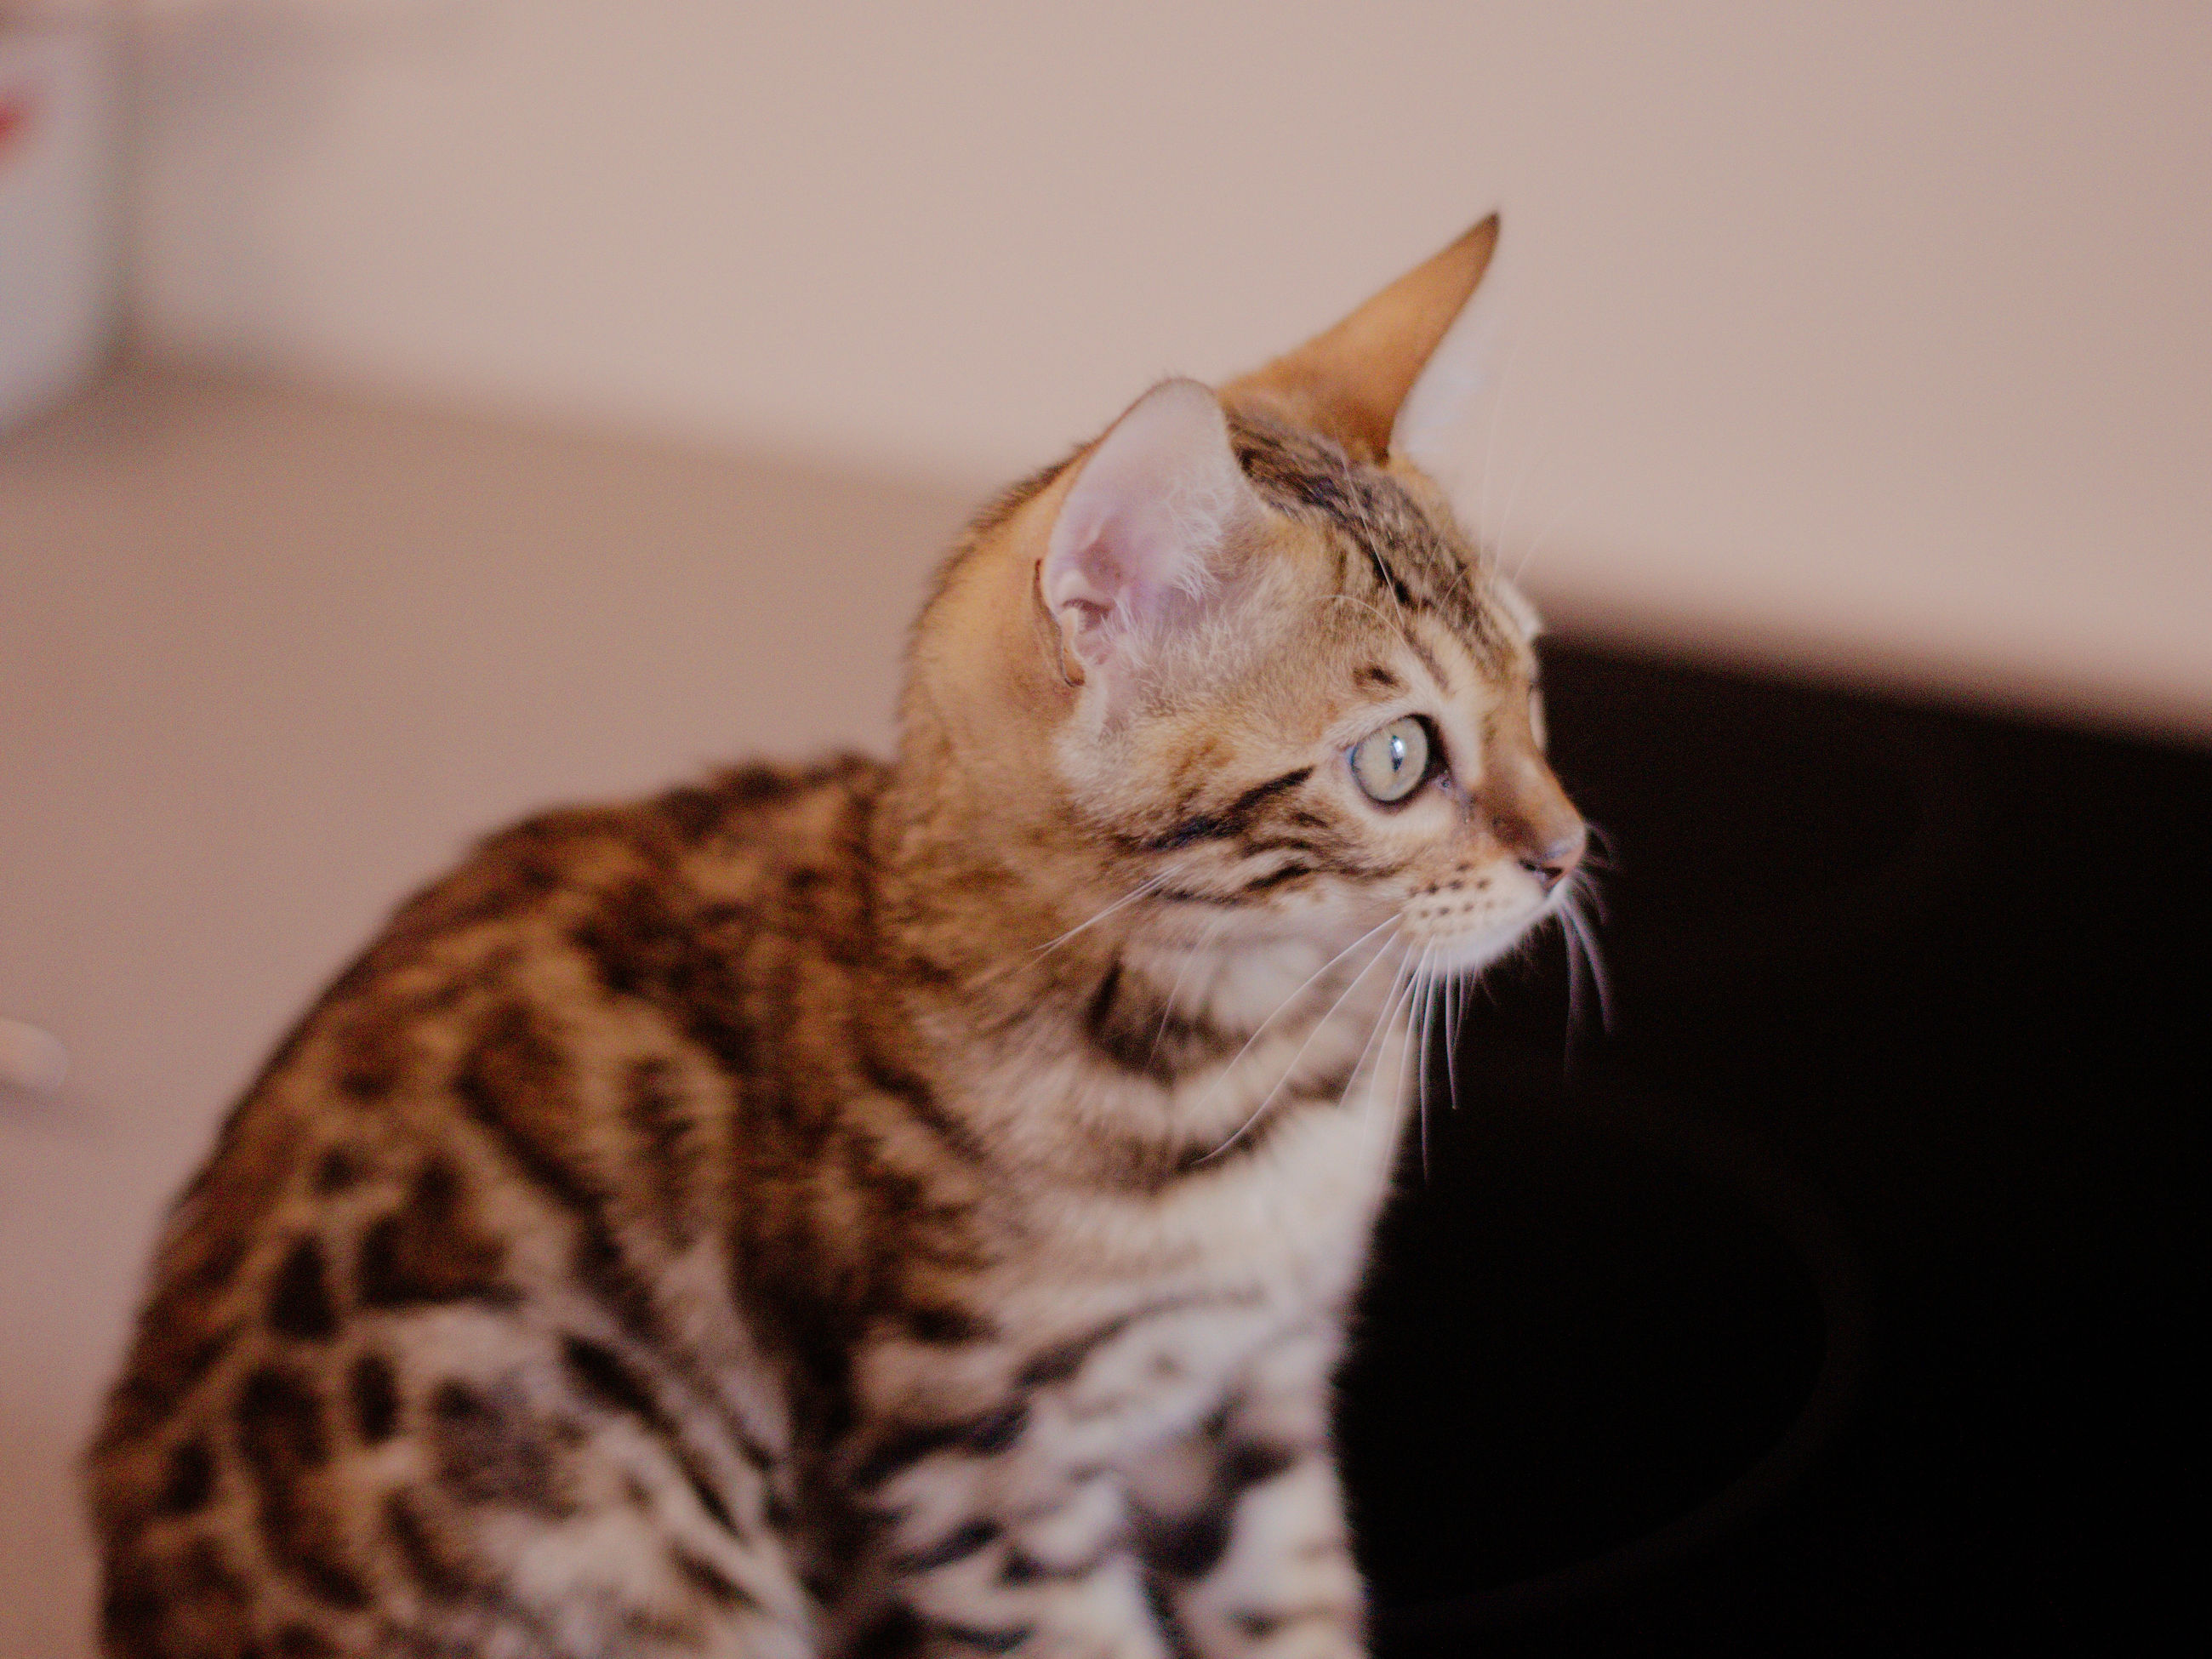 cat, pet, animal, animal themes, mammal, domestic cat, domestic animals, feline, one animal, whiskers, indoors, small to medium-sized cats, felidae, no people, carnivore, close-up, looking, tabby, focus on foreground, looking away, sitting